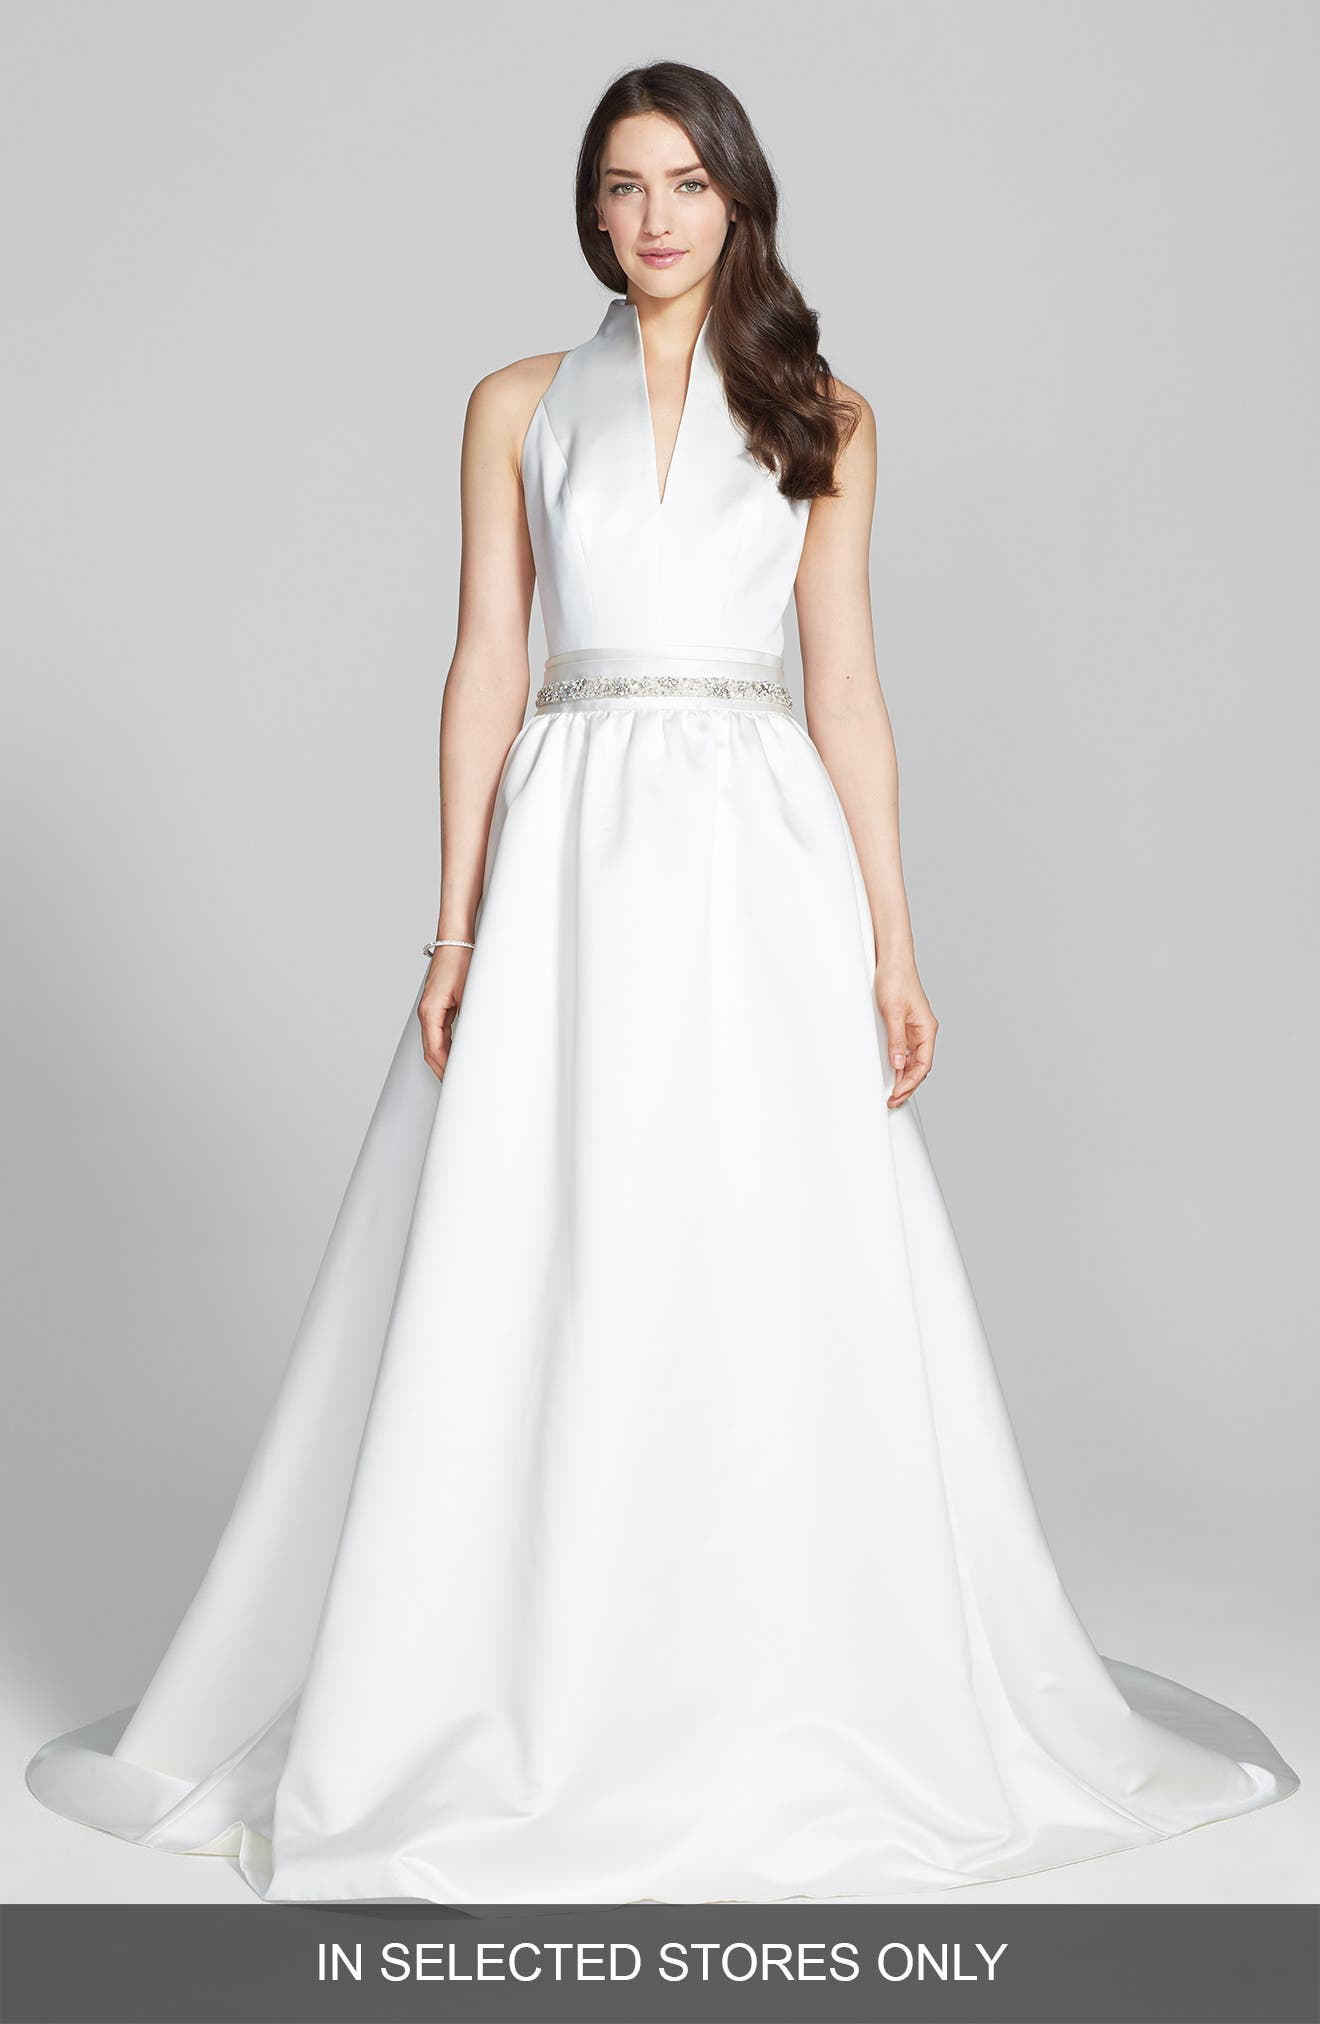 Alternate Image 1 Selected - Jesús Peiró Satin Dress with Embellished Waist Overskirt (In Stores Only)